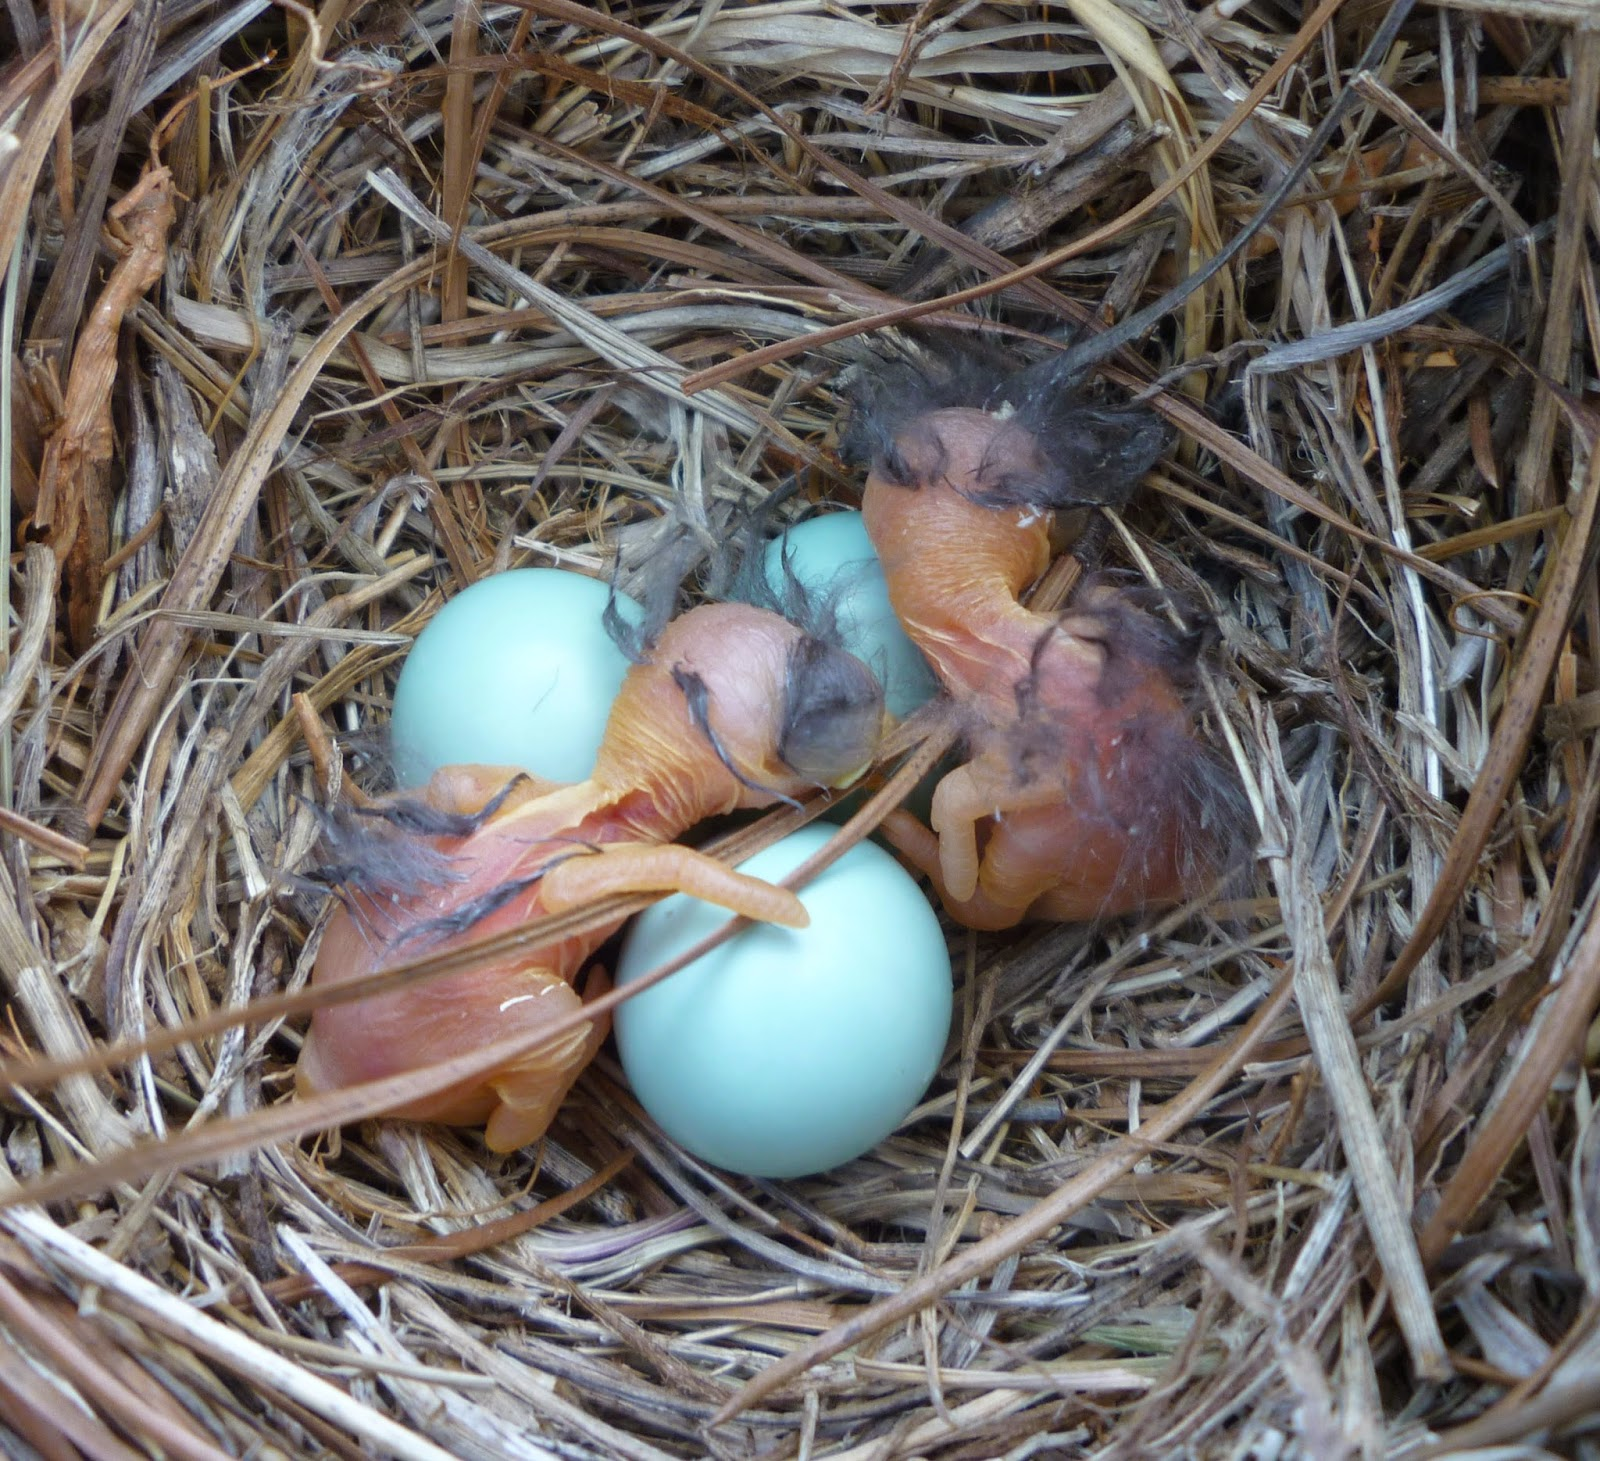 From Bluebirds to Turtles: CONTENT OF BIRD NESTS ON APRIL ...